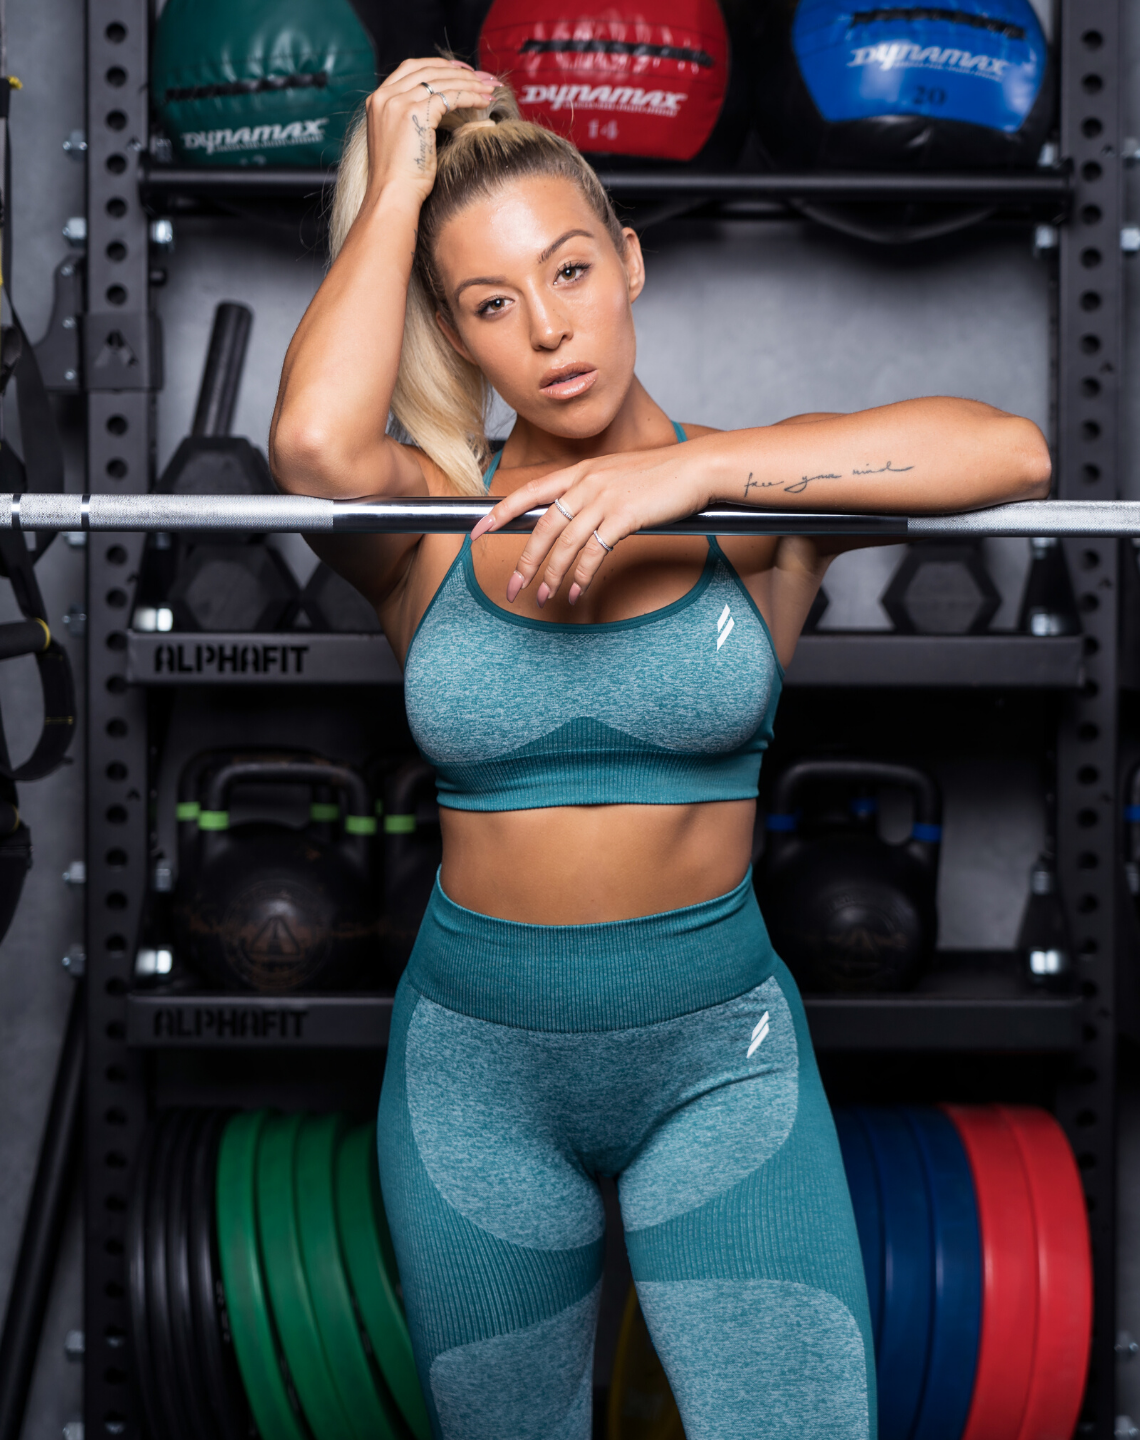 Kali Burns poses in a gym wearing Doyoueven leggings and crop